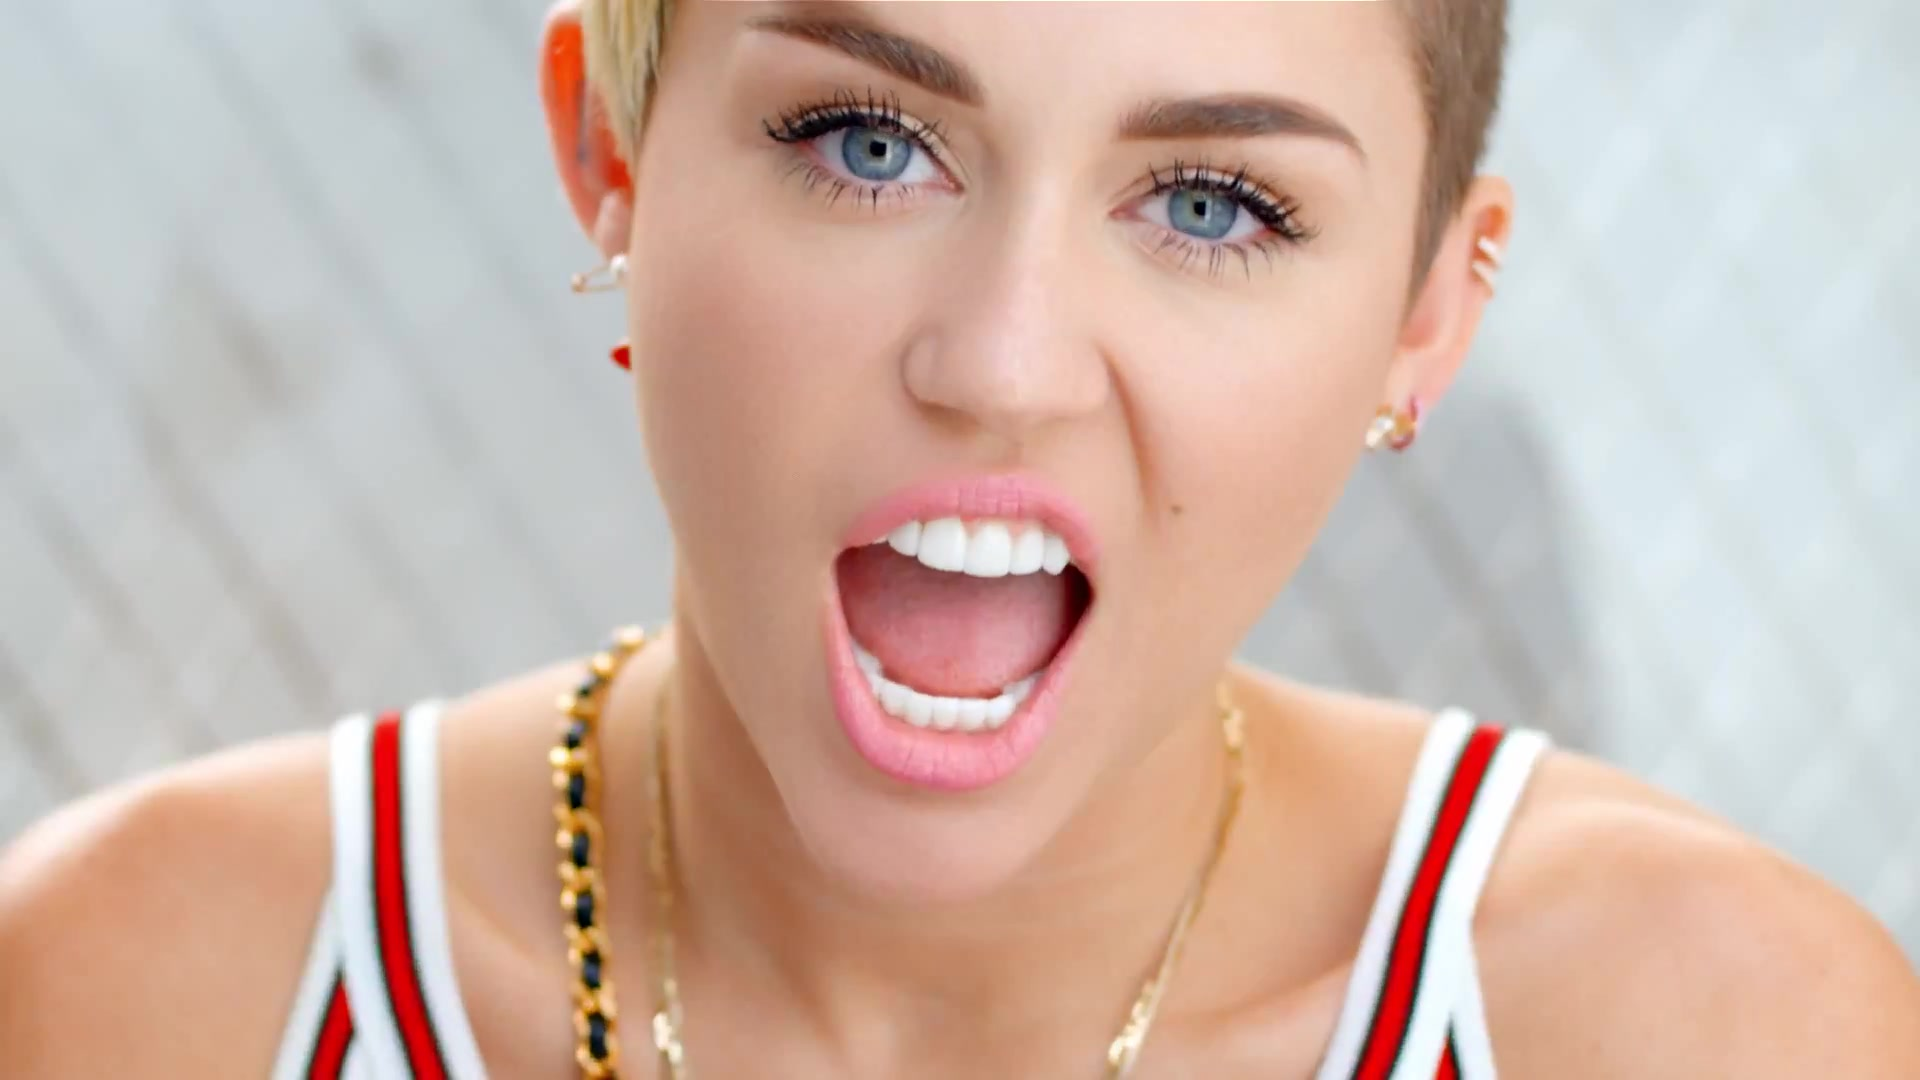 Download bangerz hd miley cyrus background HD wallpaper 1920x1080